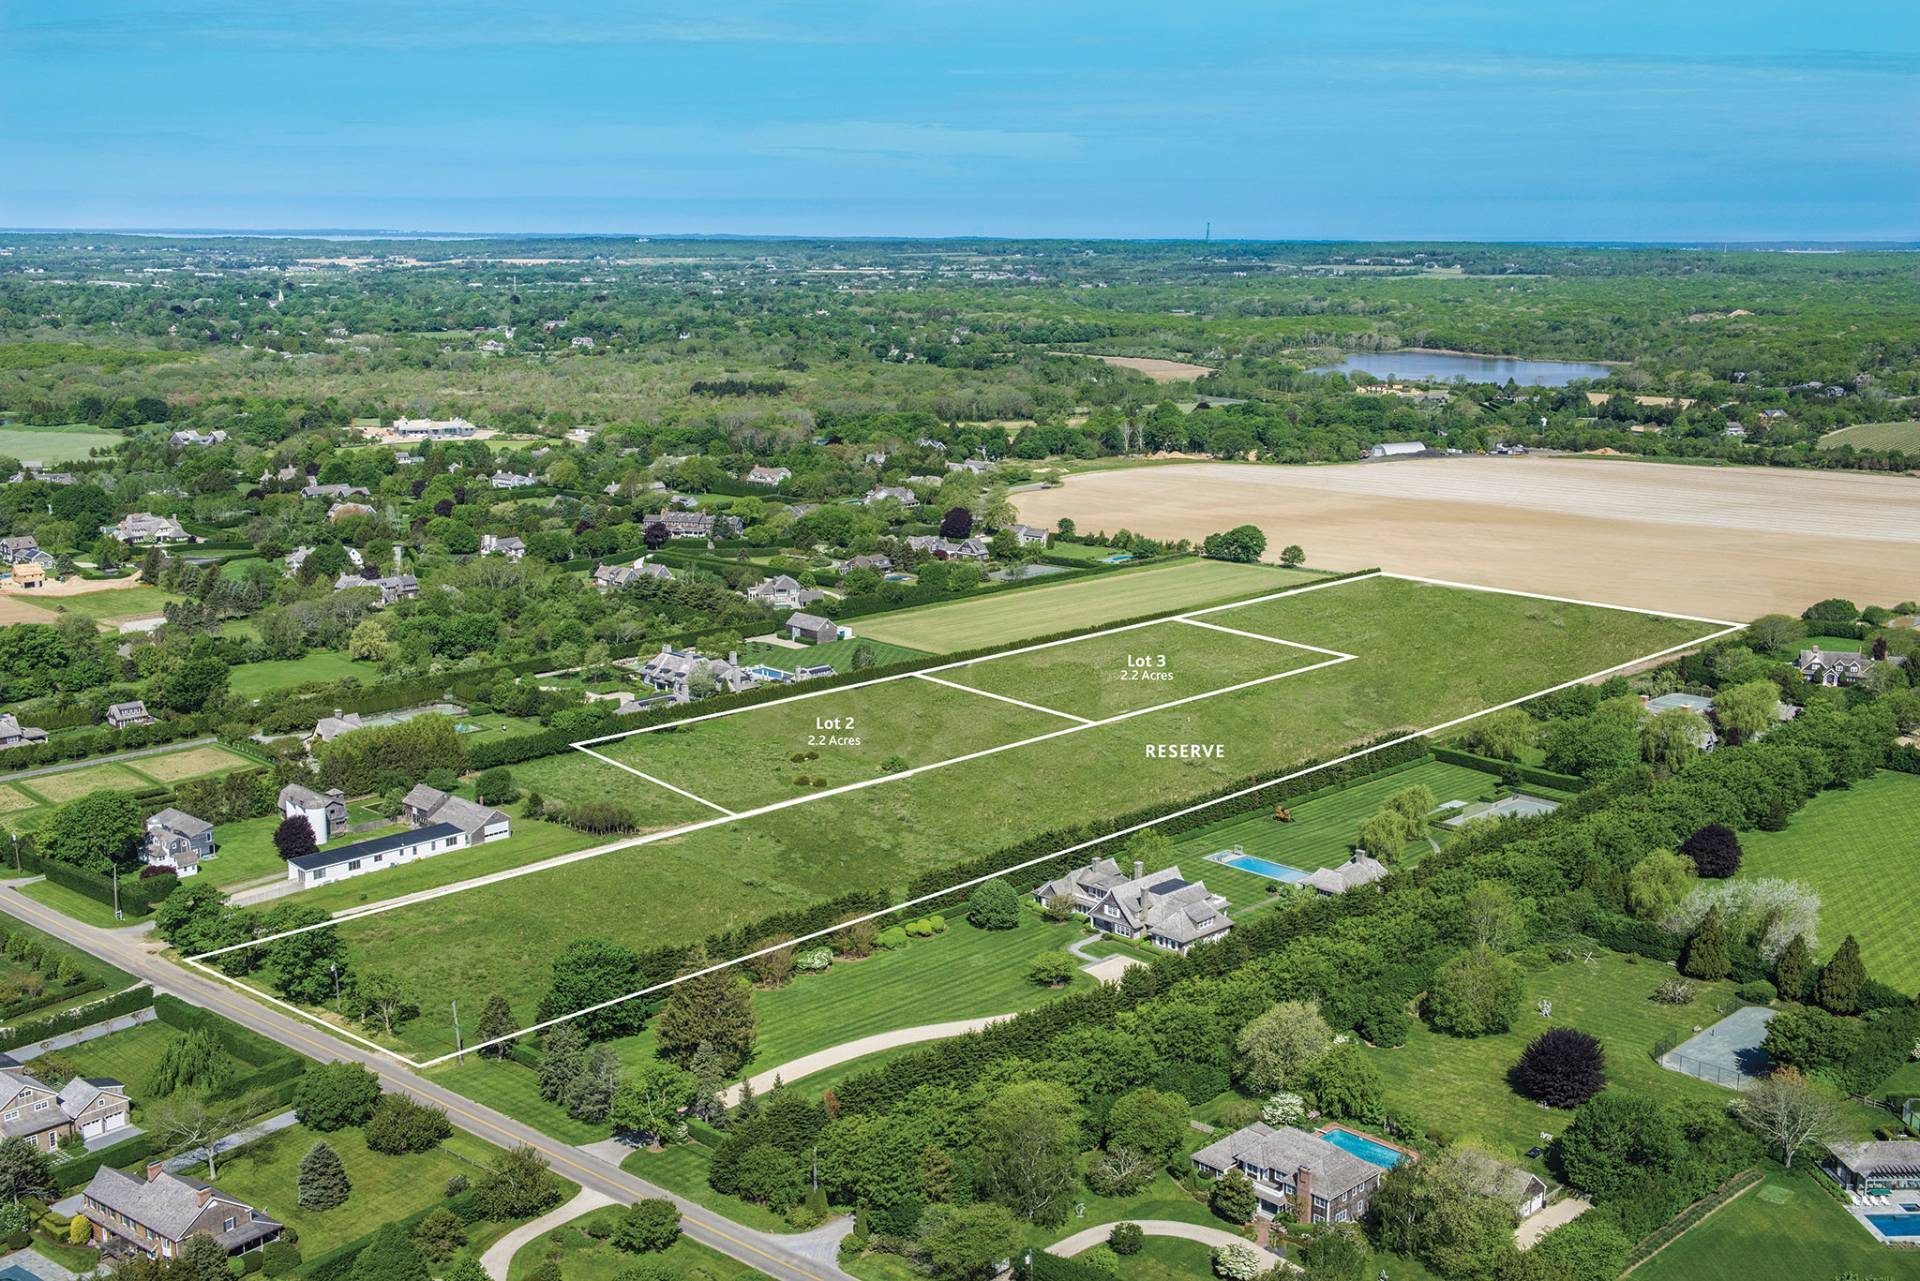 Terreno por un Venta en The Land At Luna Farm 284 Parsonage Lane - Lot 3, Sagaponack, Nueva York